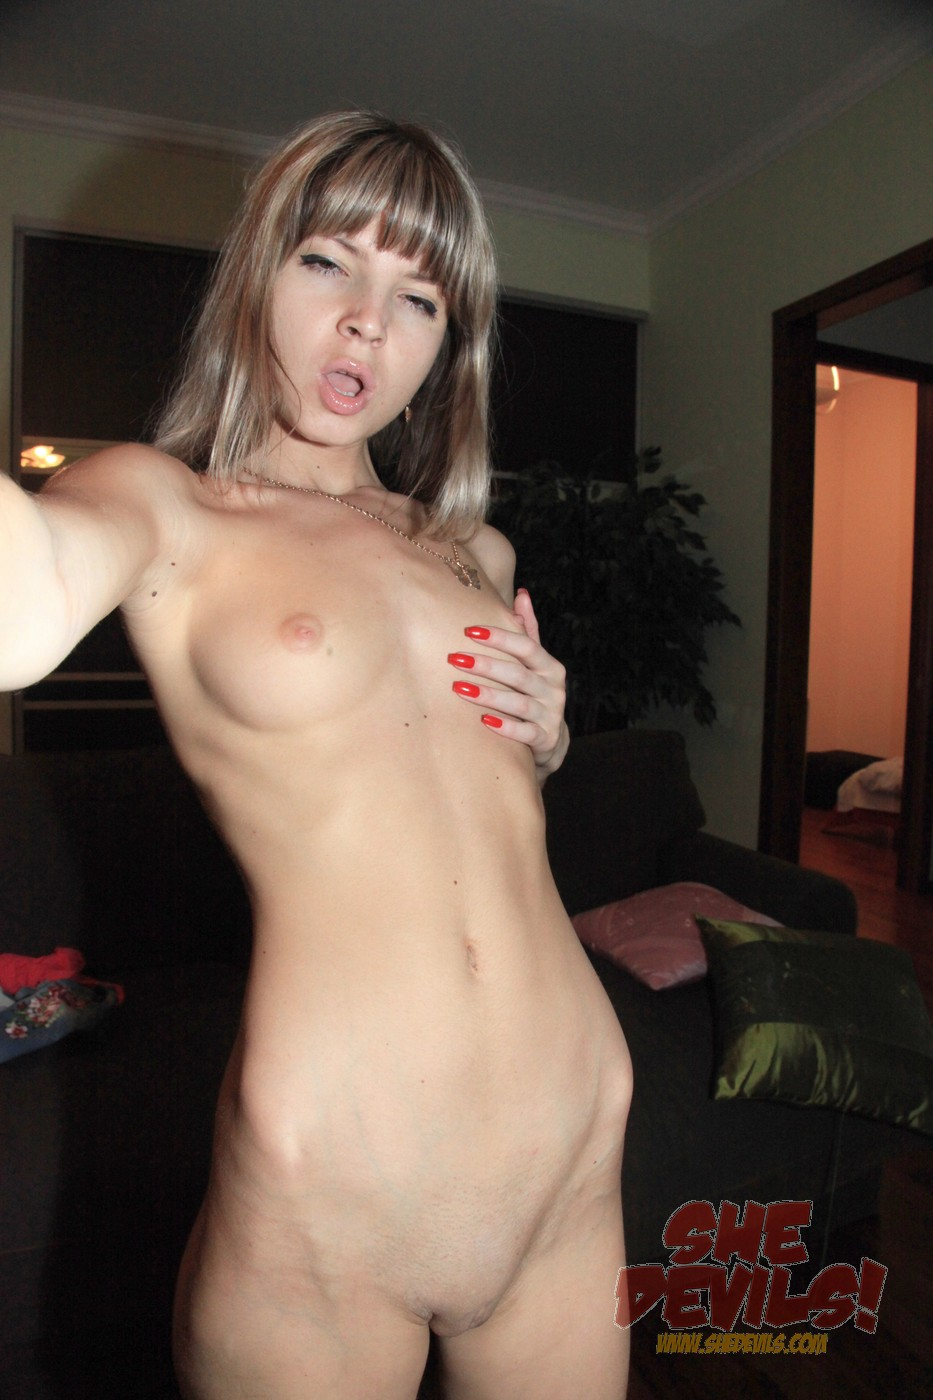 Clitoris girl hot picture